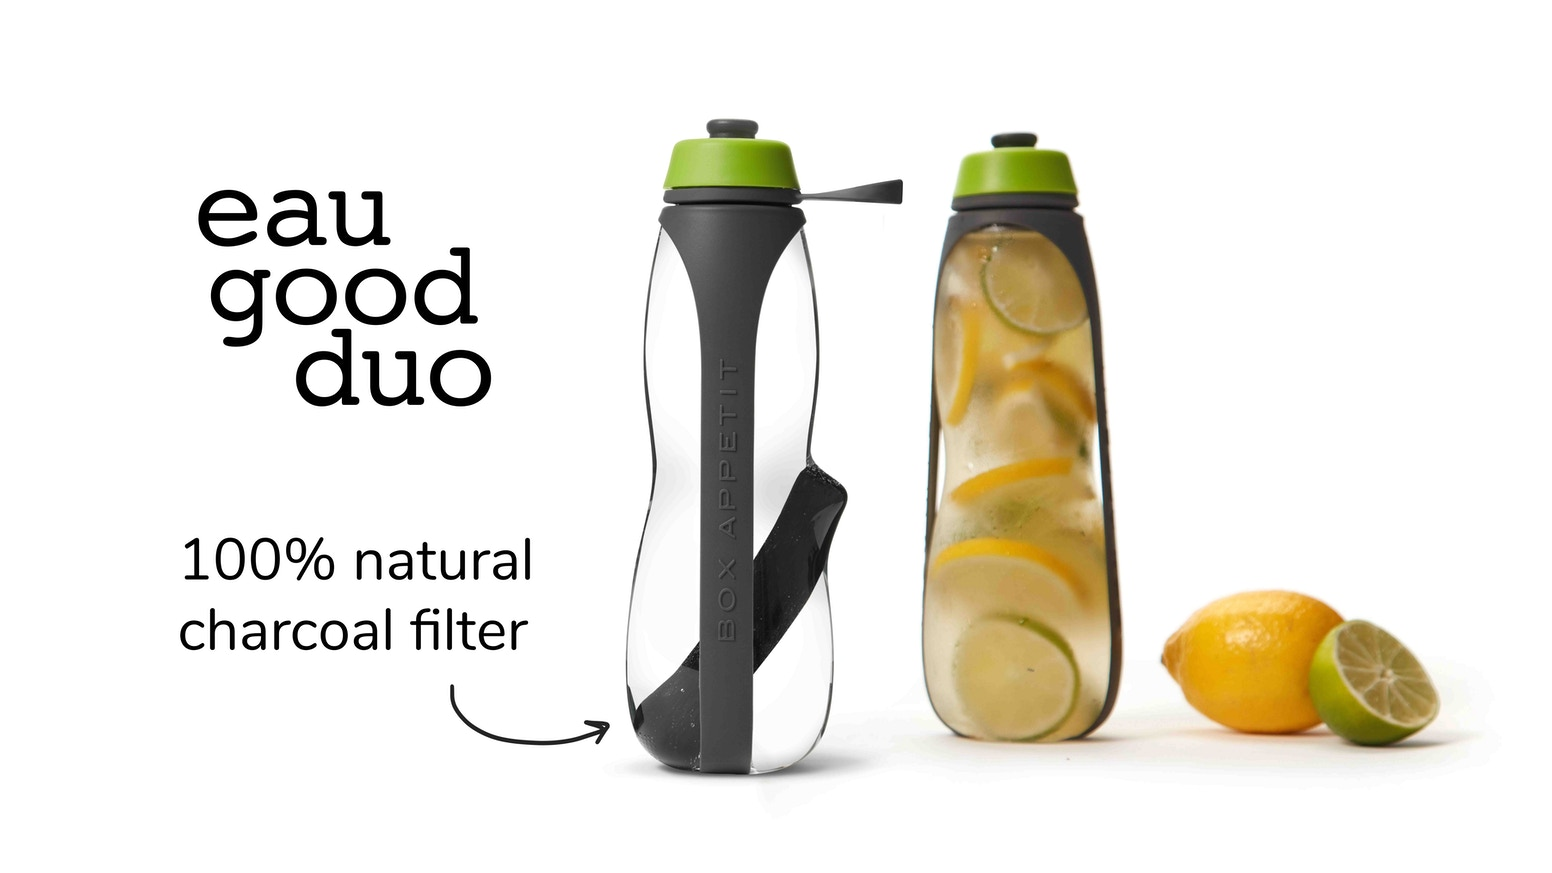 Created by Black+Blum, the Eau Good Duo has dual functionality, is beautifully designed and makes your tap water taste great!